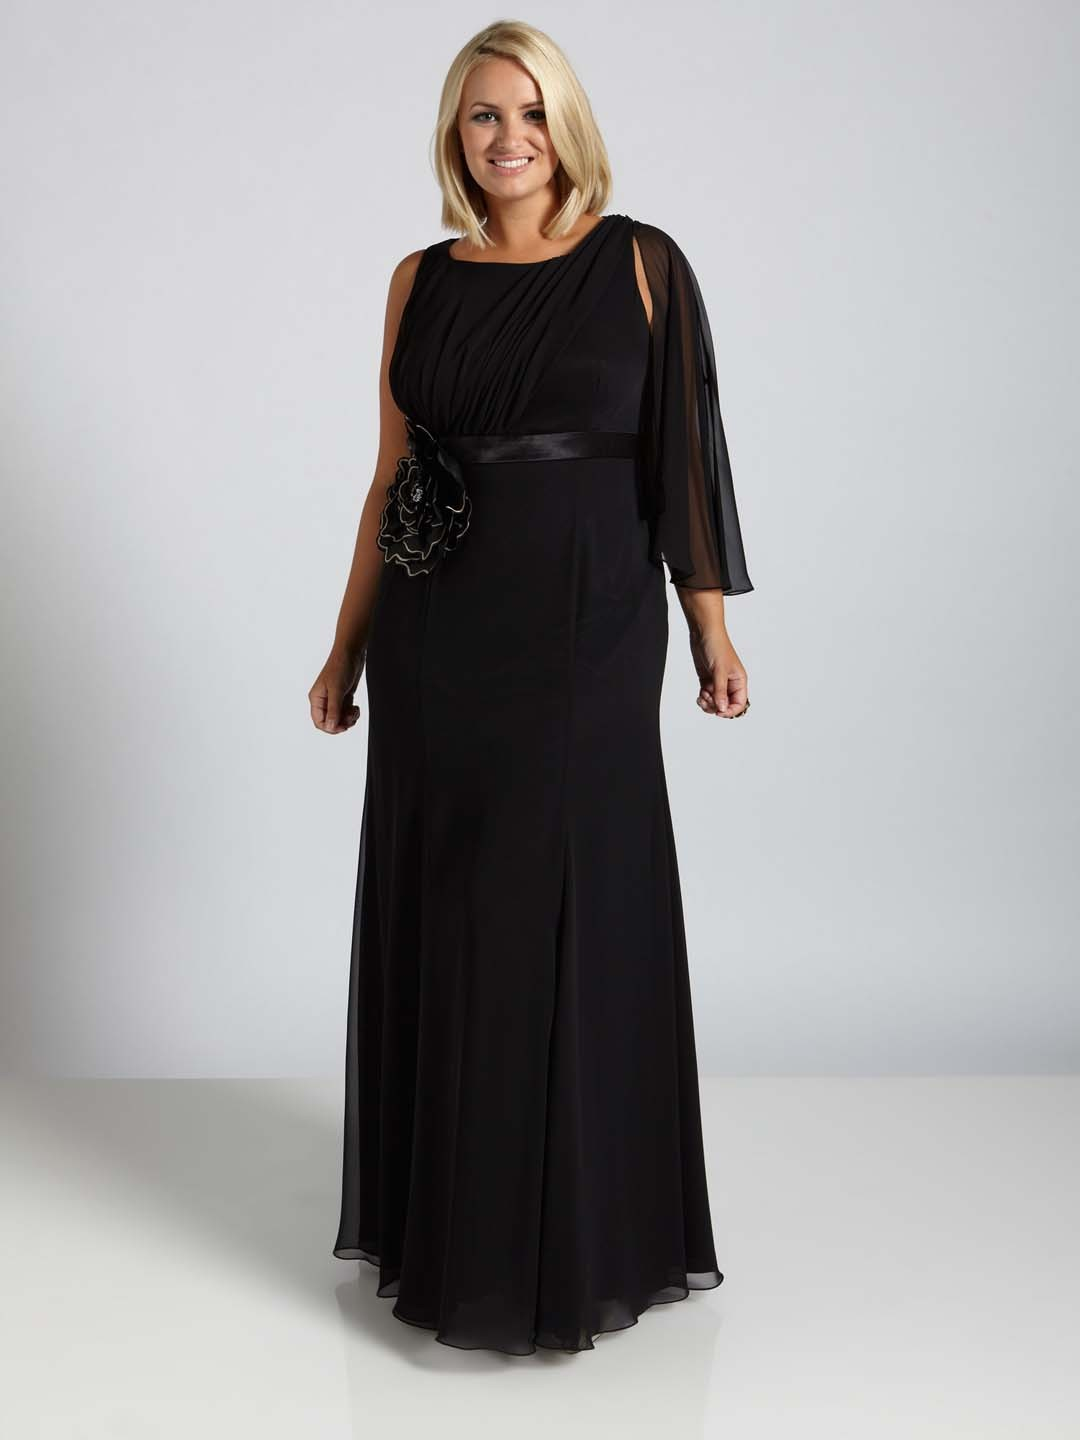 Plus Size Evening Dresses | Dressed Up Girl